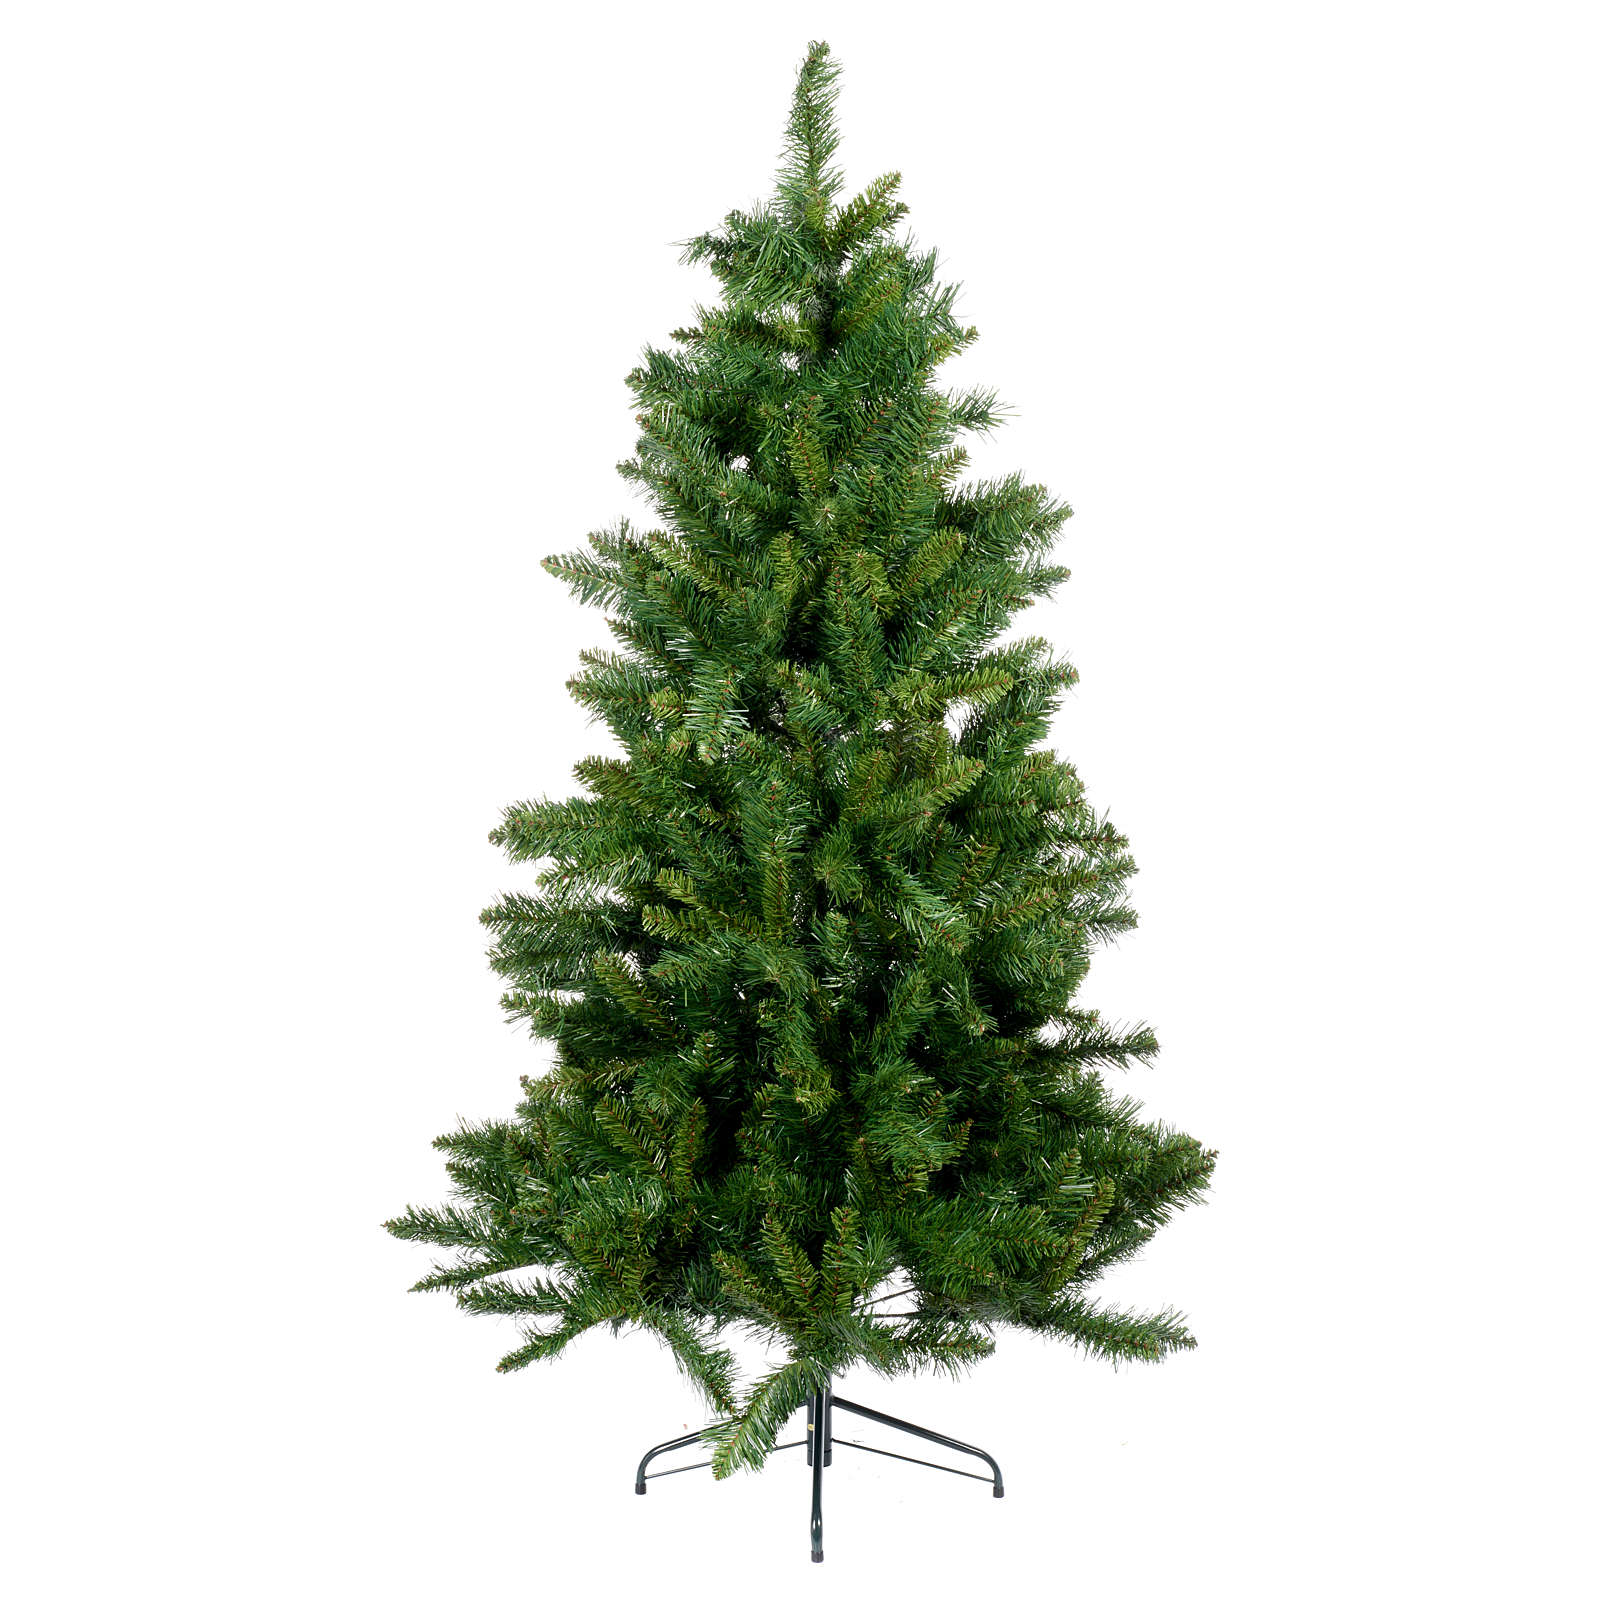 Christmas tree 210 cm with memory shape Stoccolma 3